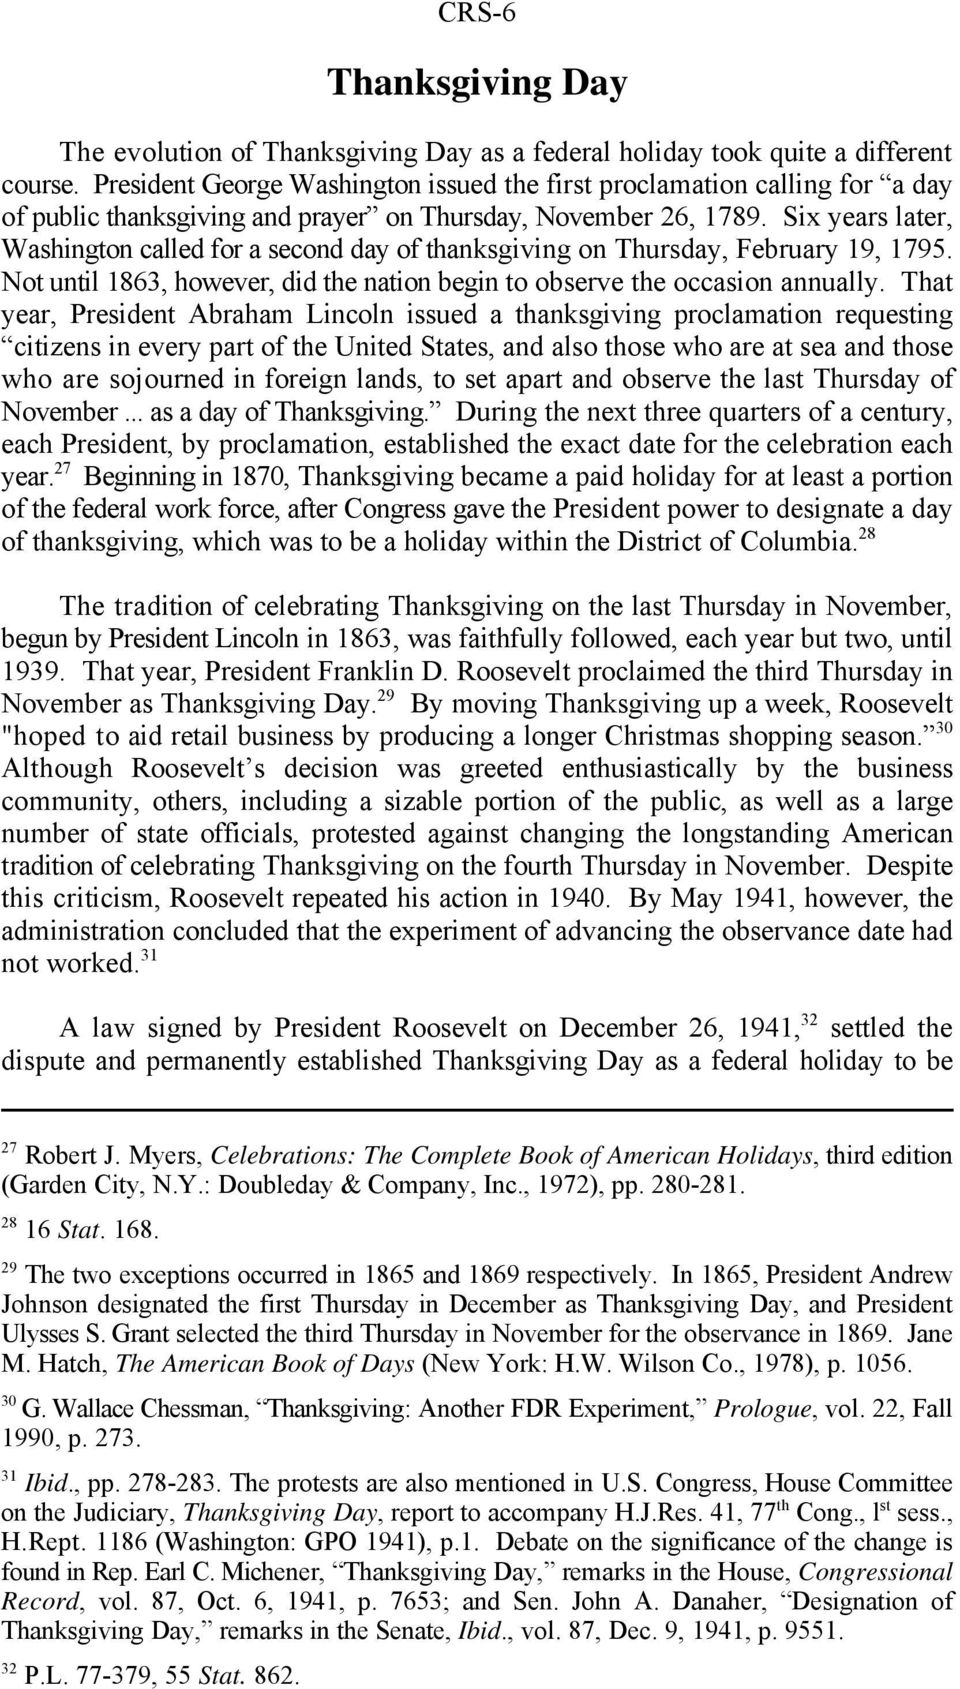 Six years later, Washington called for a second day of thanksgiving on Thursday, February 19, 1795. Not until 1863, however, did the nation begin to observe the occasion annually.